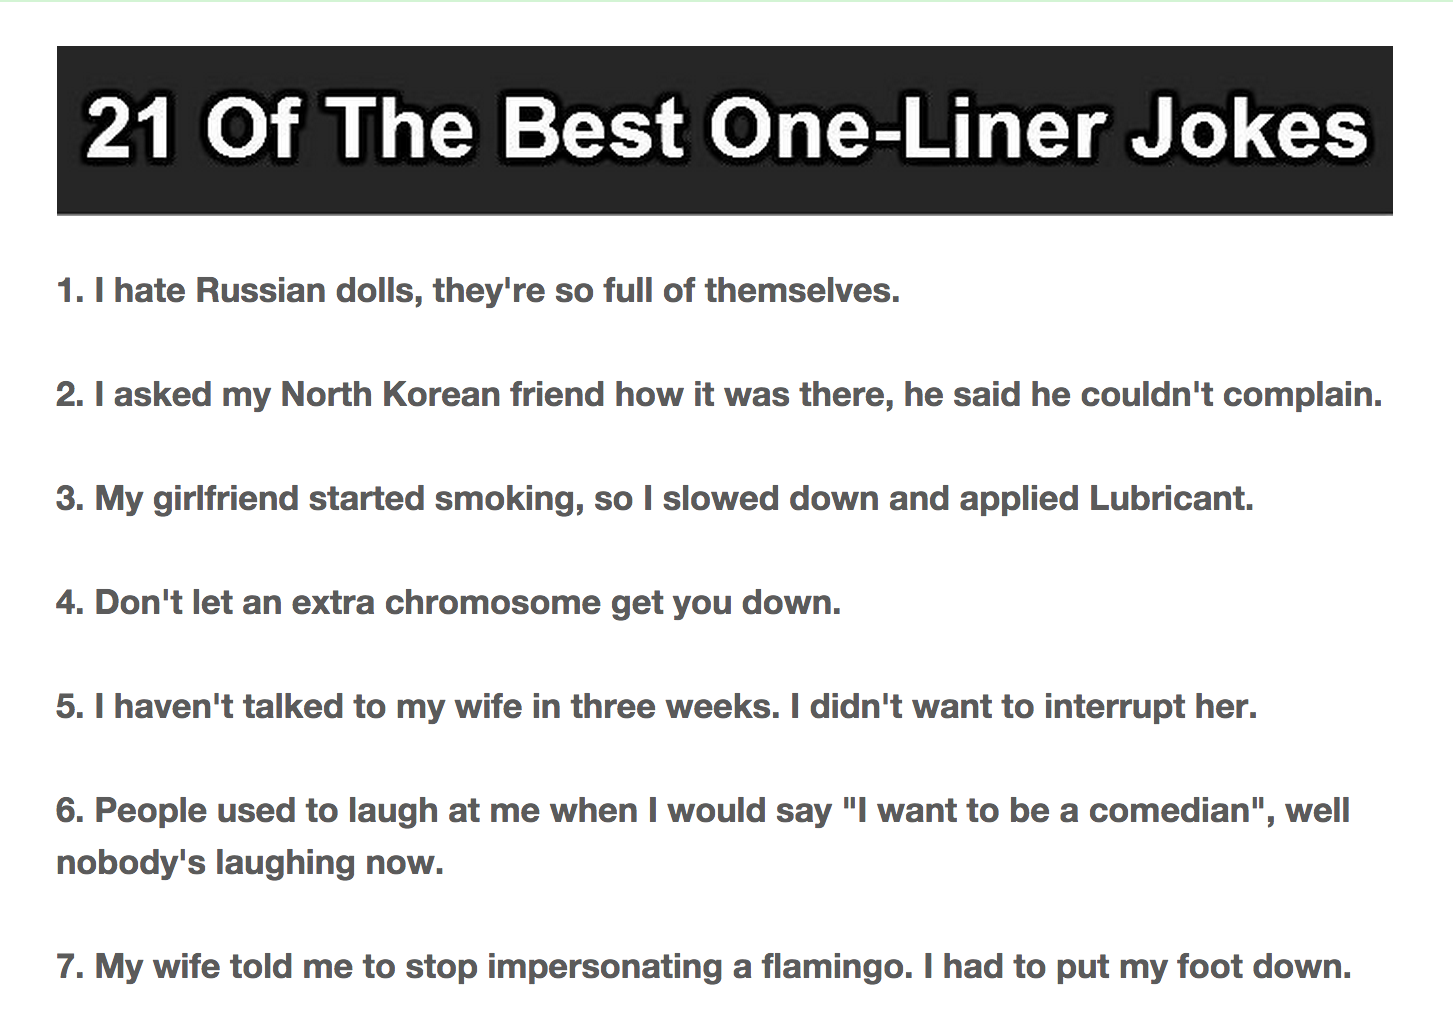 Humourous one liners